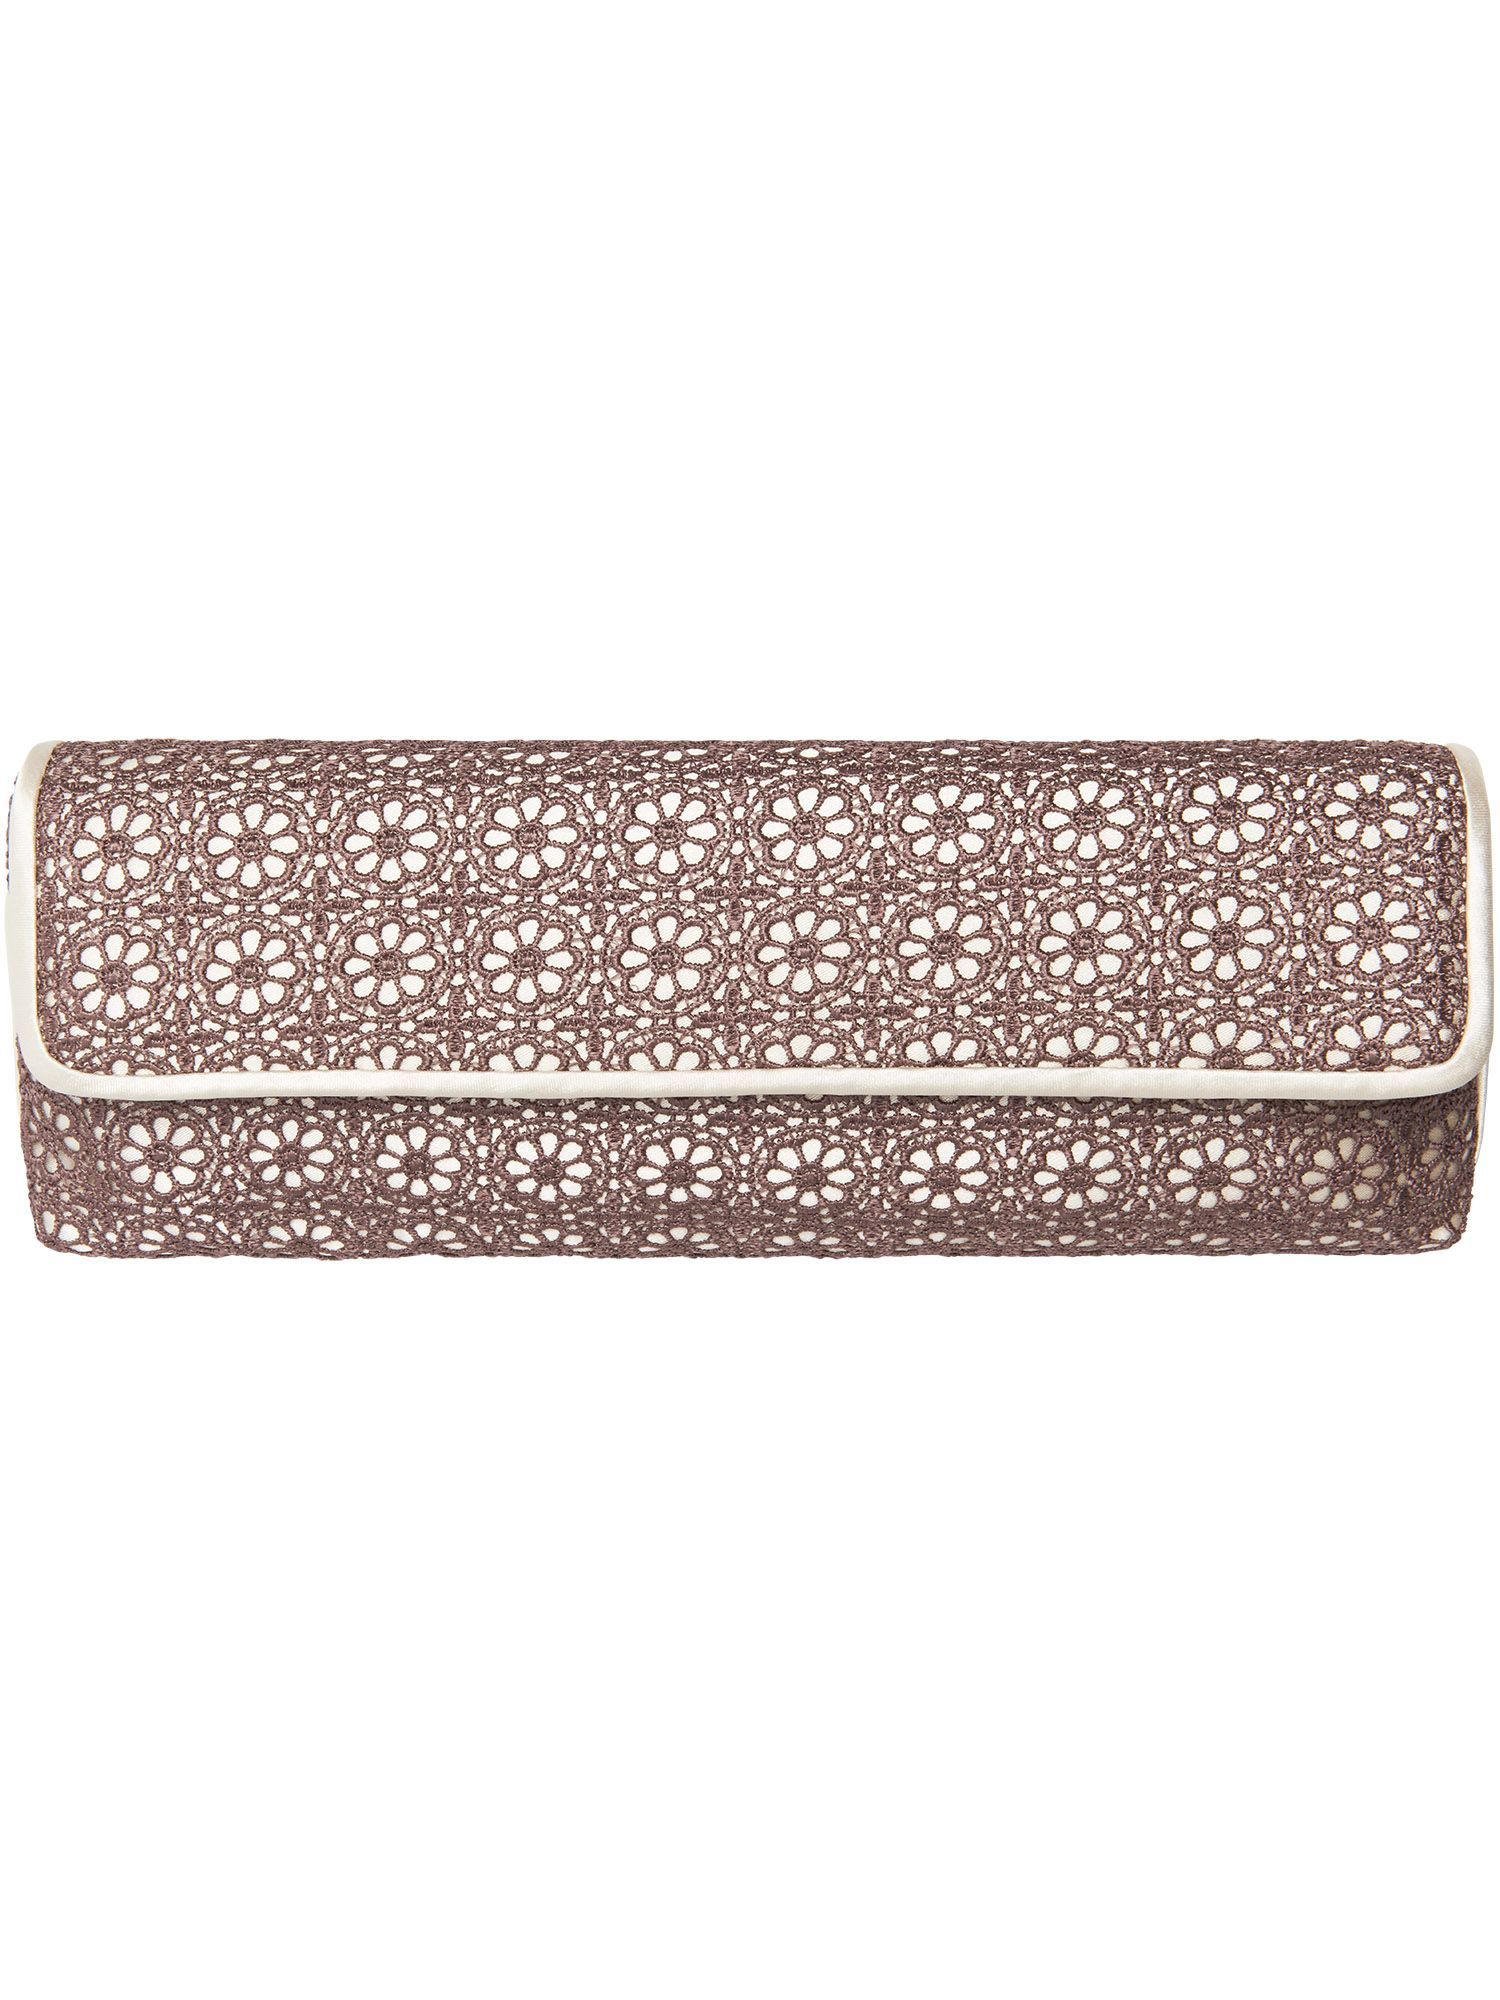 Shiloh lace clutch bag